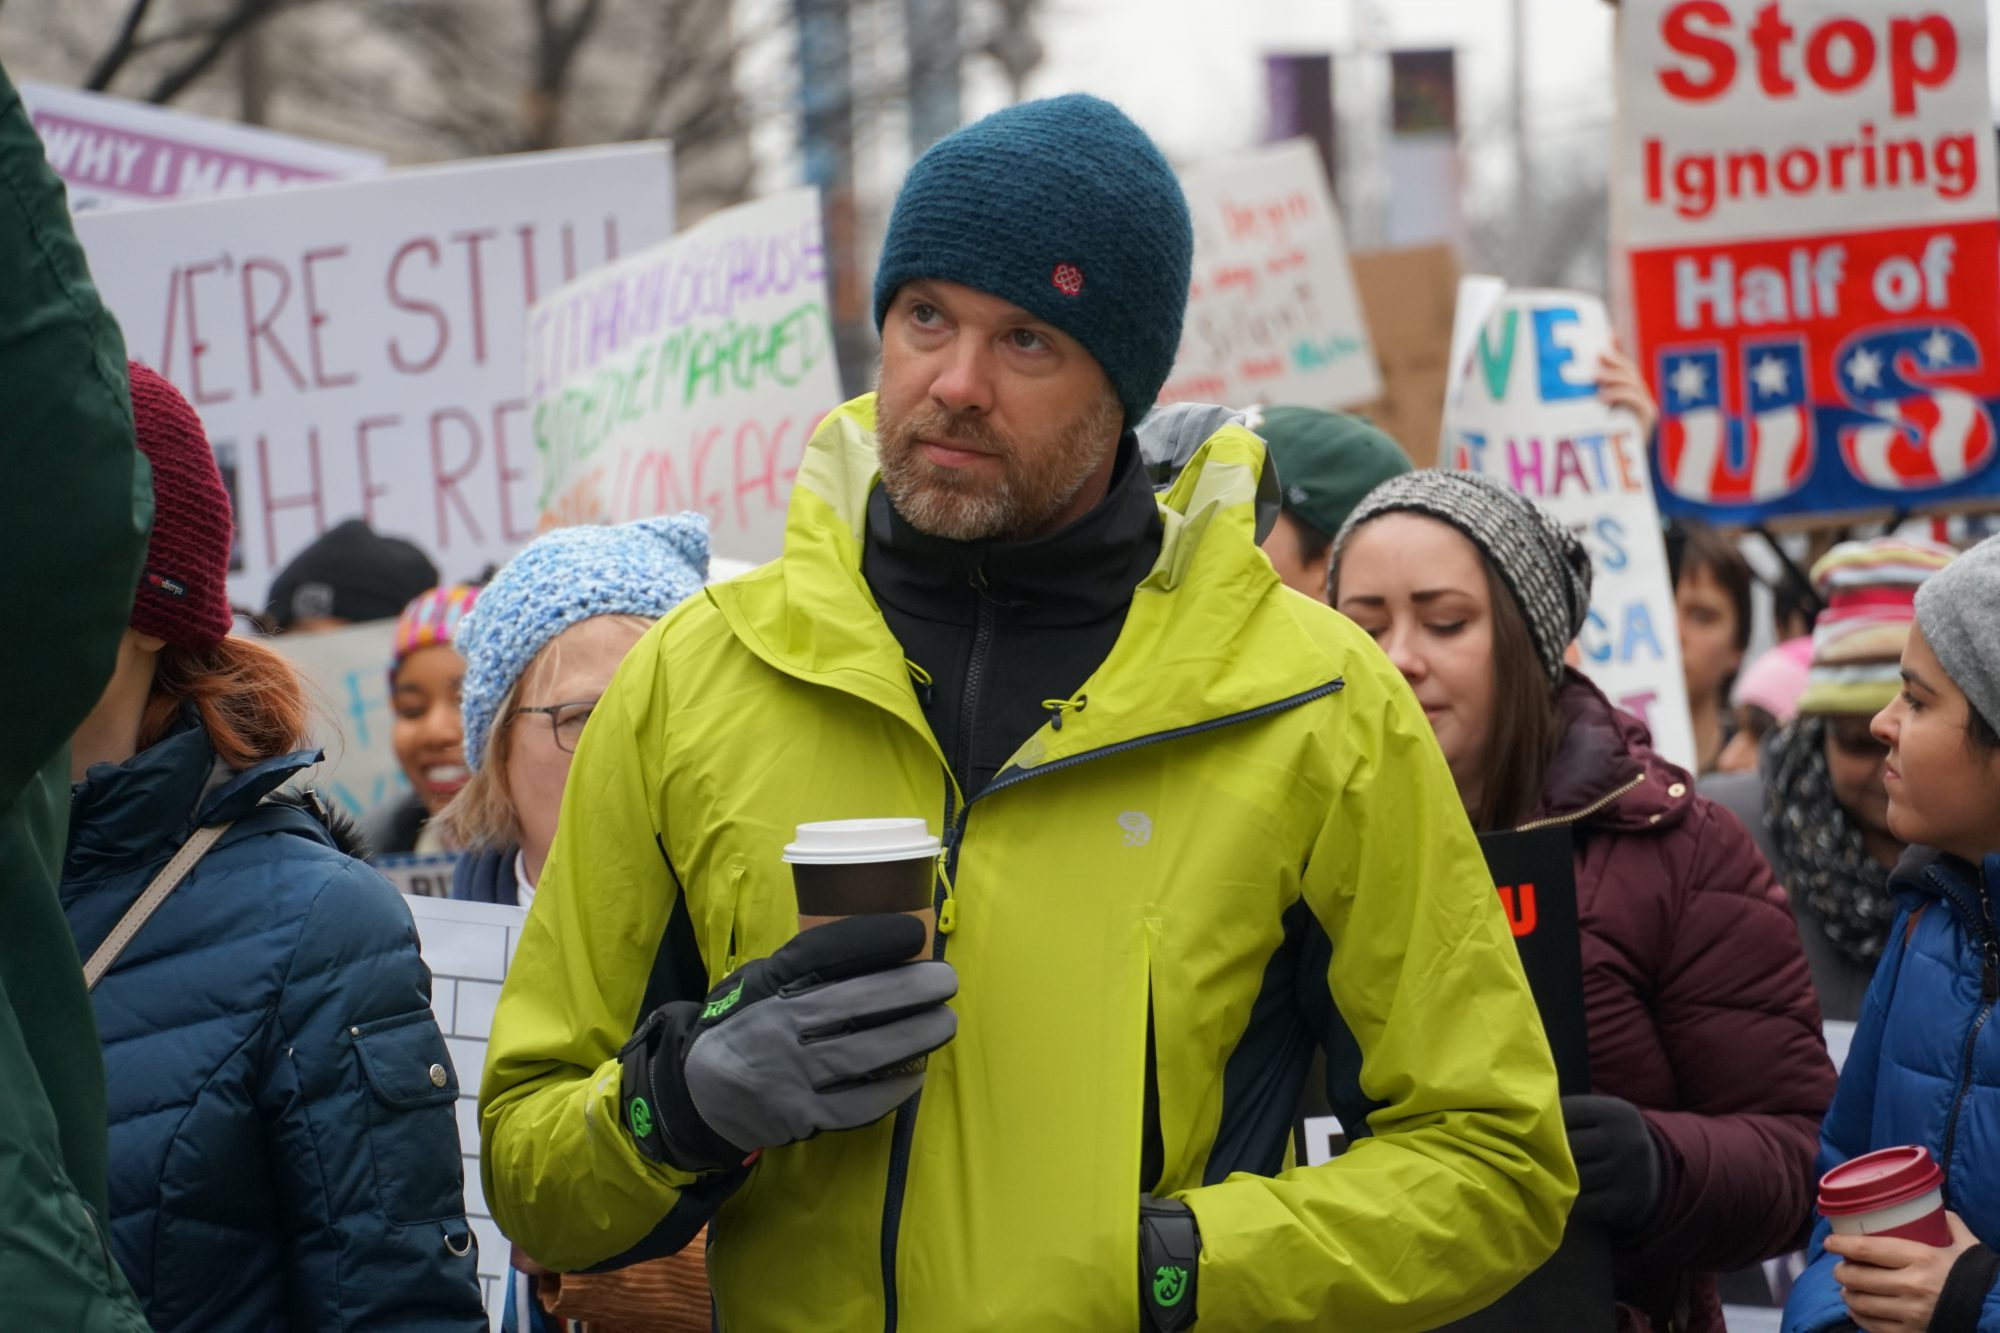 Men were present at the Women's March as well but were noticeably less vocal. (Ester Wells/MNS)